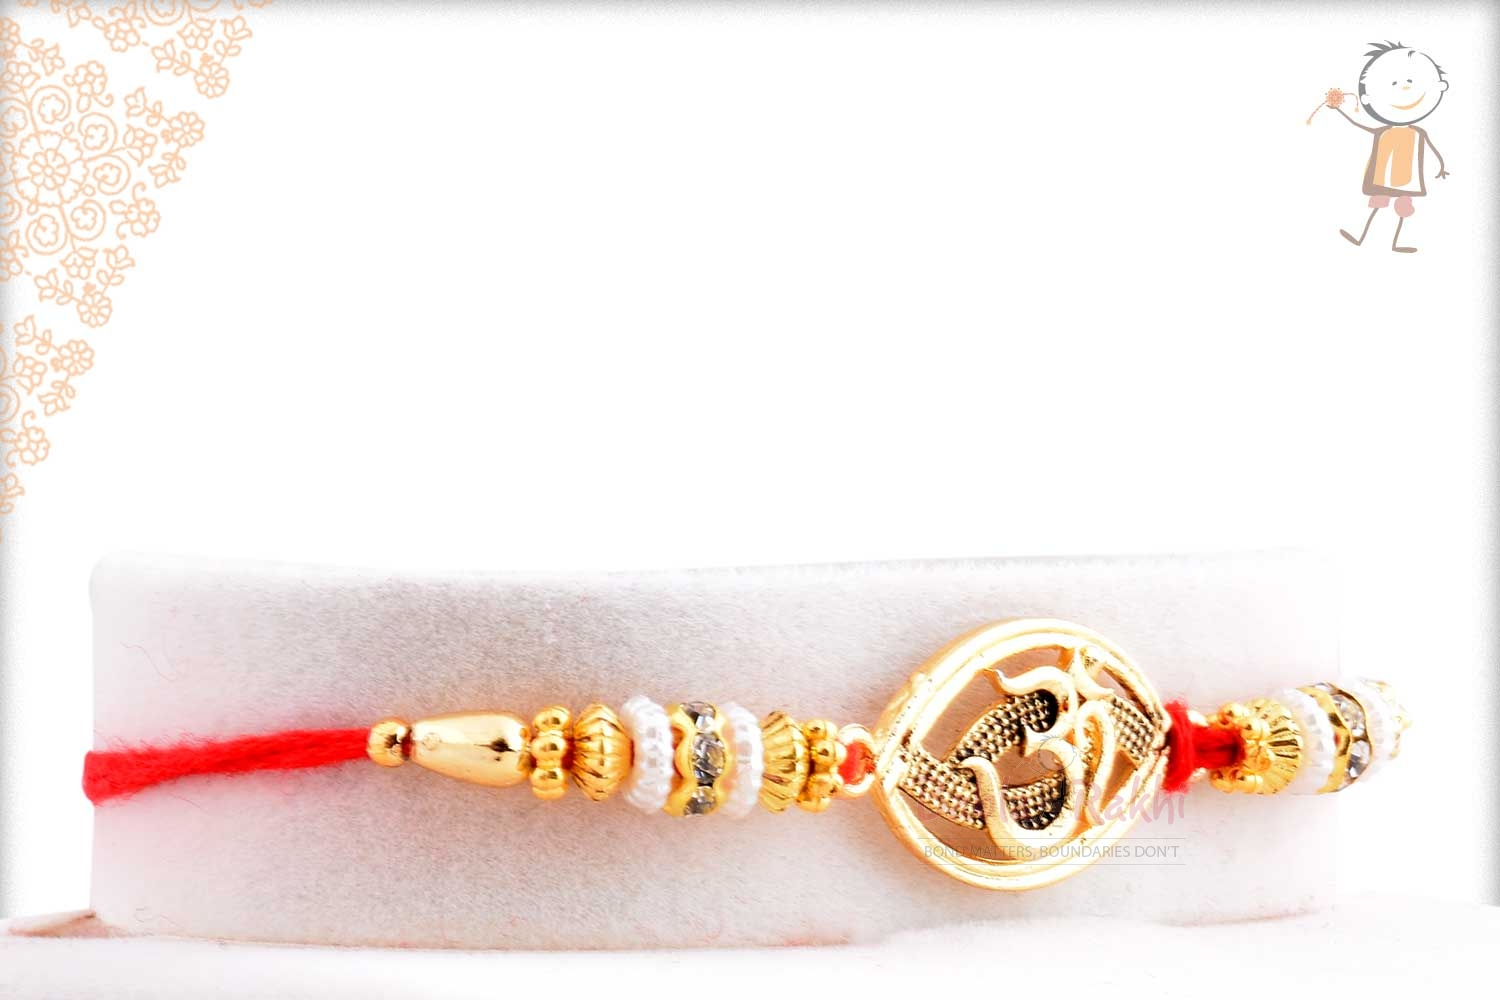 Exclusive Oval OM Rakhi with Beads 2